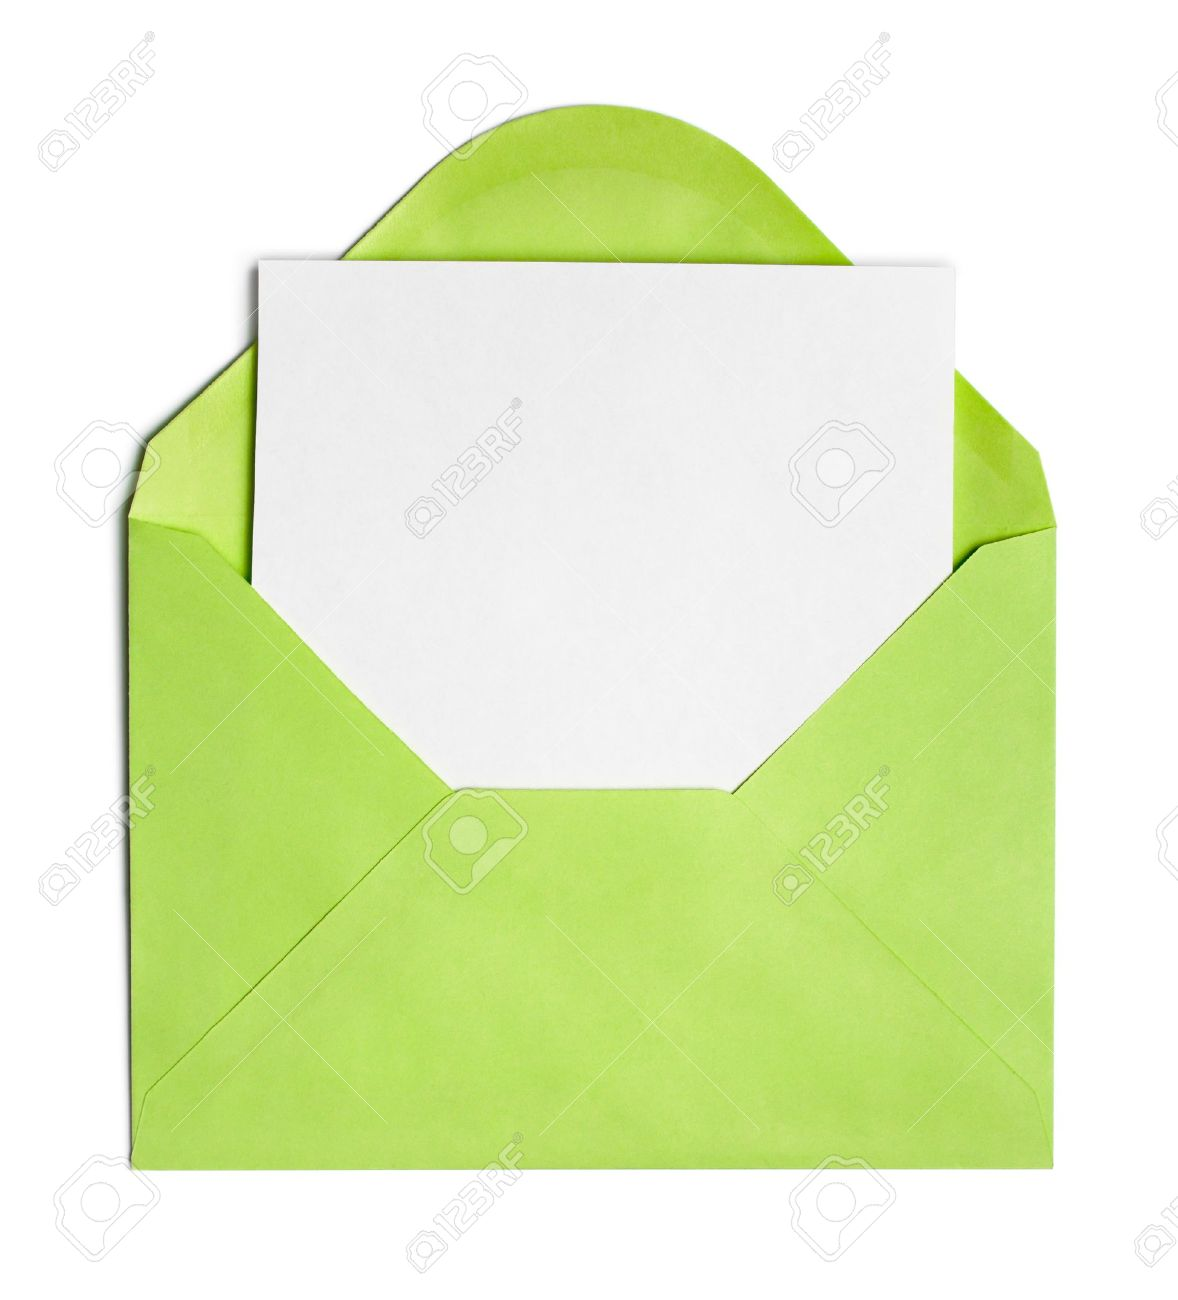 Opened green envelope or cover with blank paper sheet included Stock Photo - 14898518